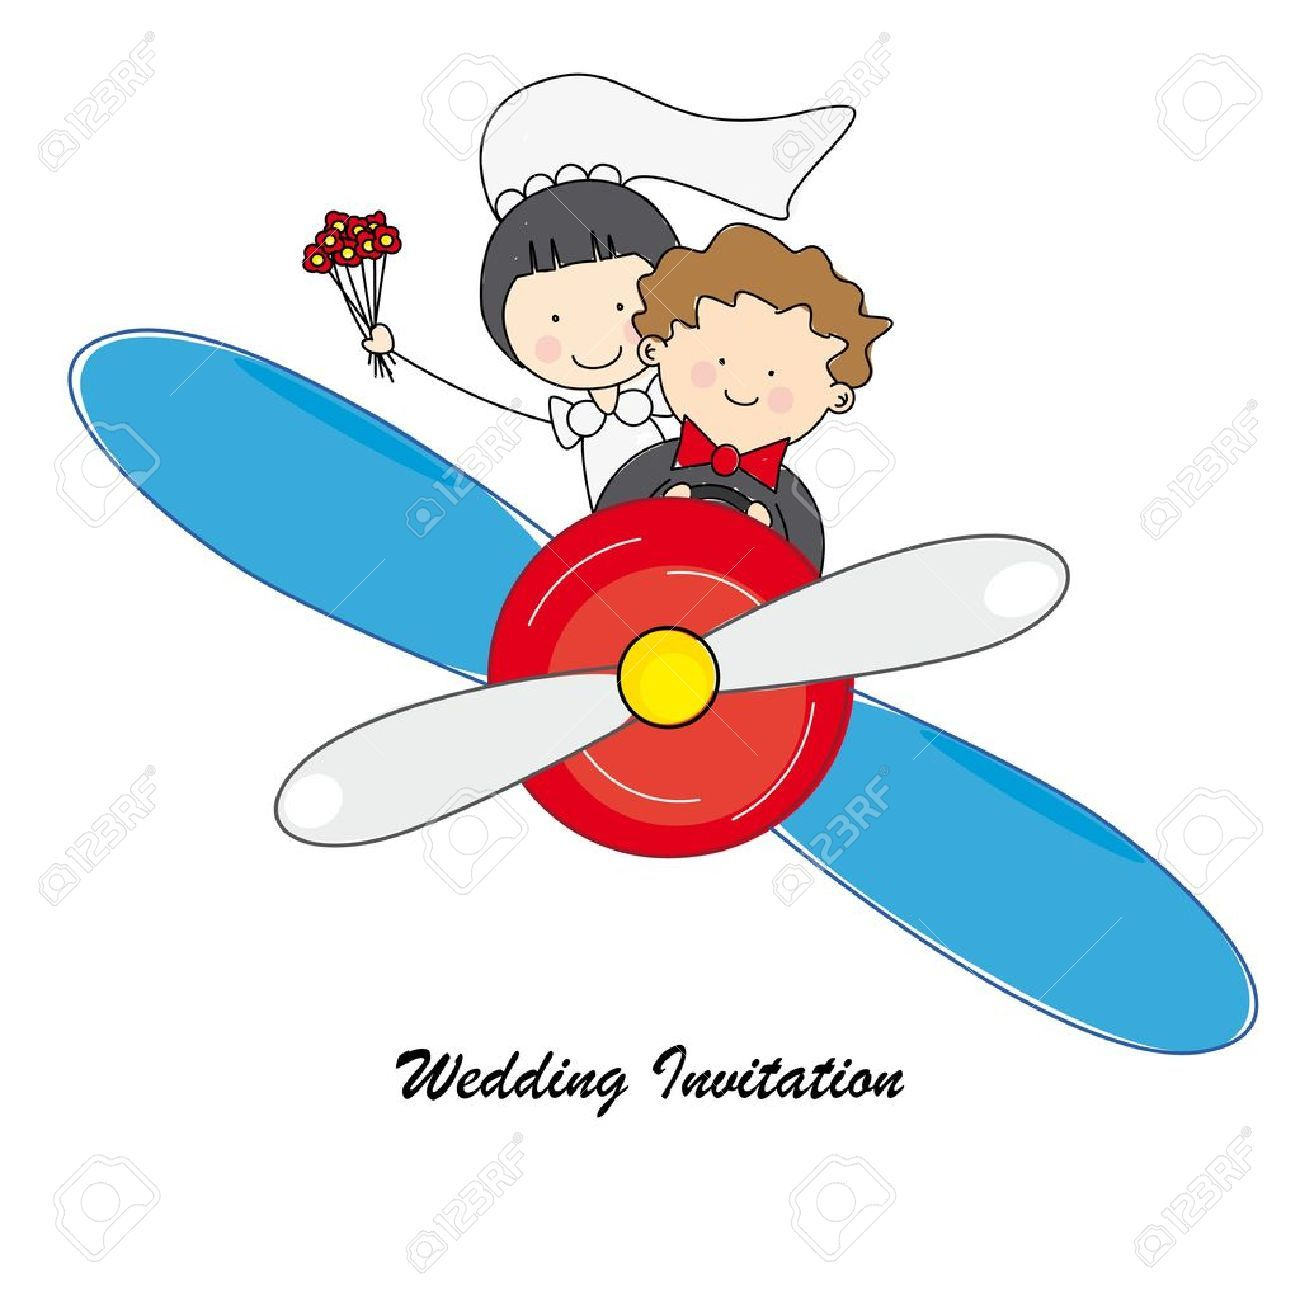 Dont be this guy photos at wedding clipart clip art royalty free stock Stock Vector | Logo Inspiration | Airplane wedding invitations ... clip art royalty free stock